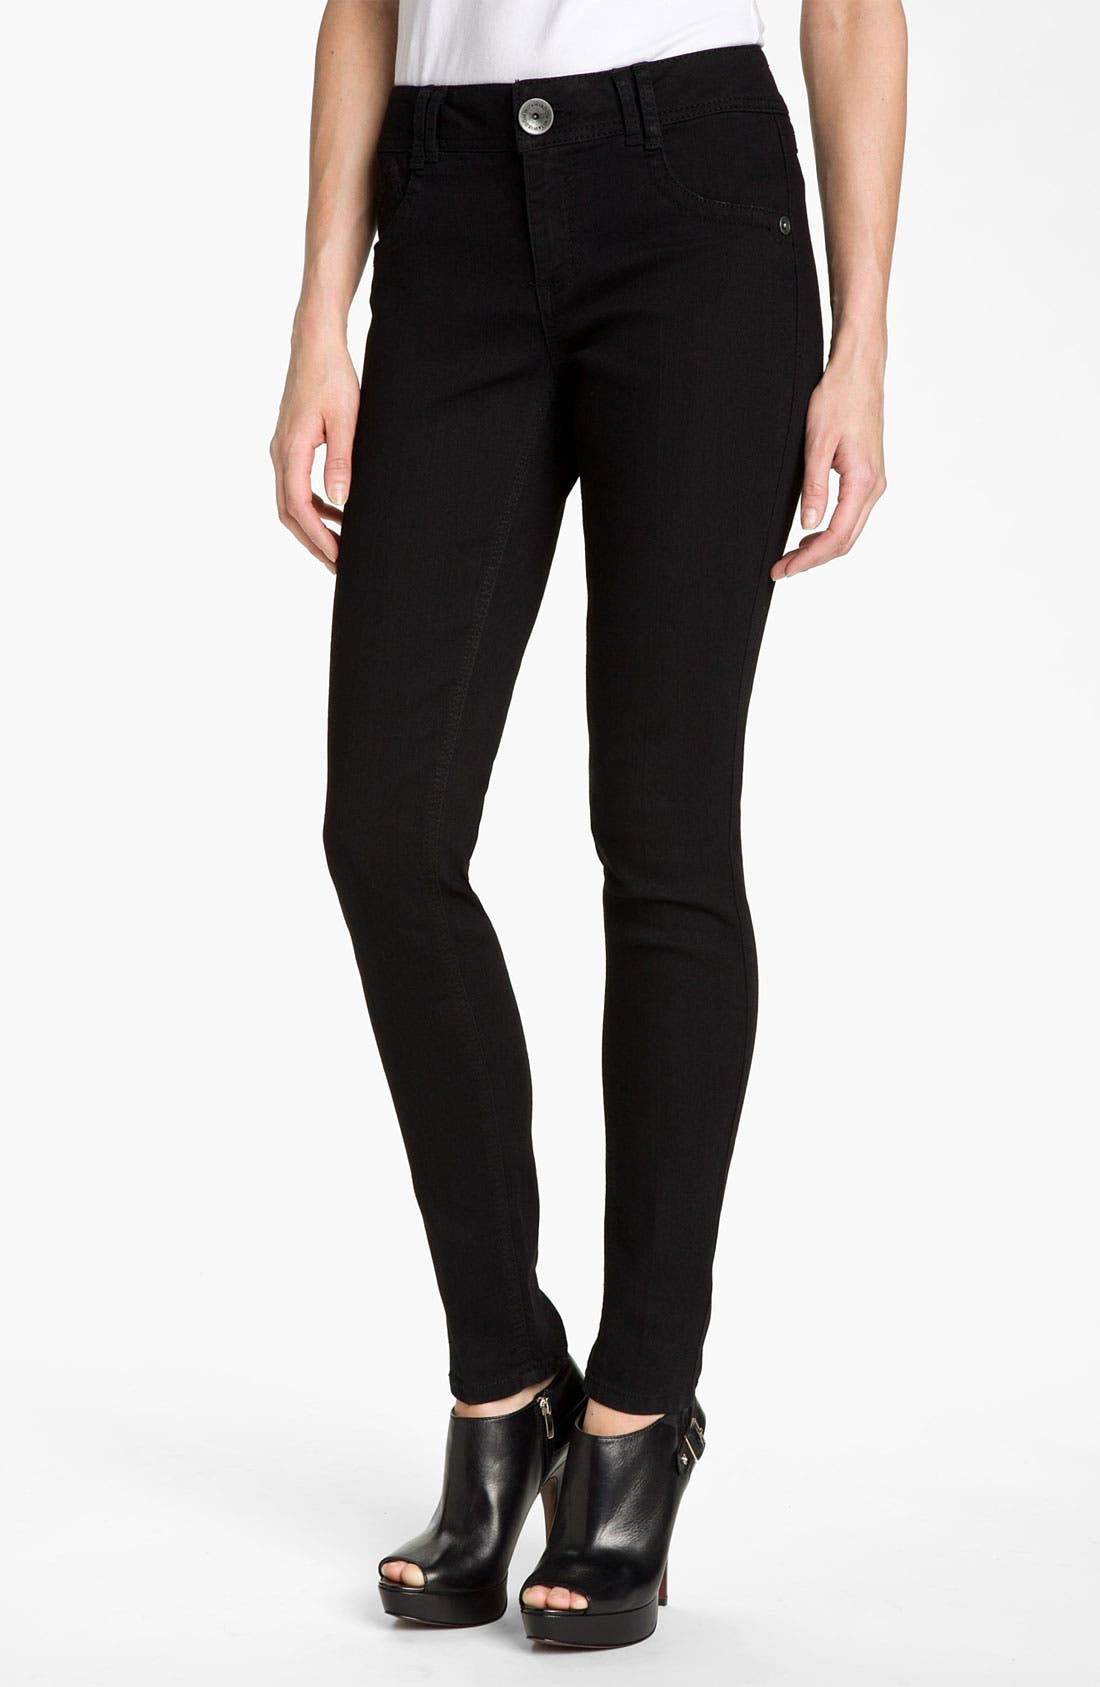 Alternate Image 1 Selected - Wit & Wisdom Denim Leggings (Black Wash) (Nordstrom Exclusive)